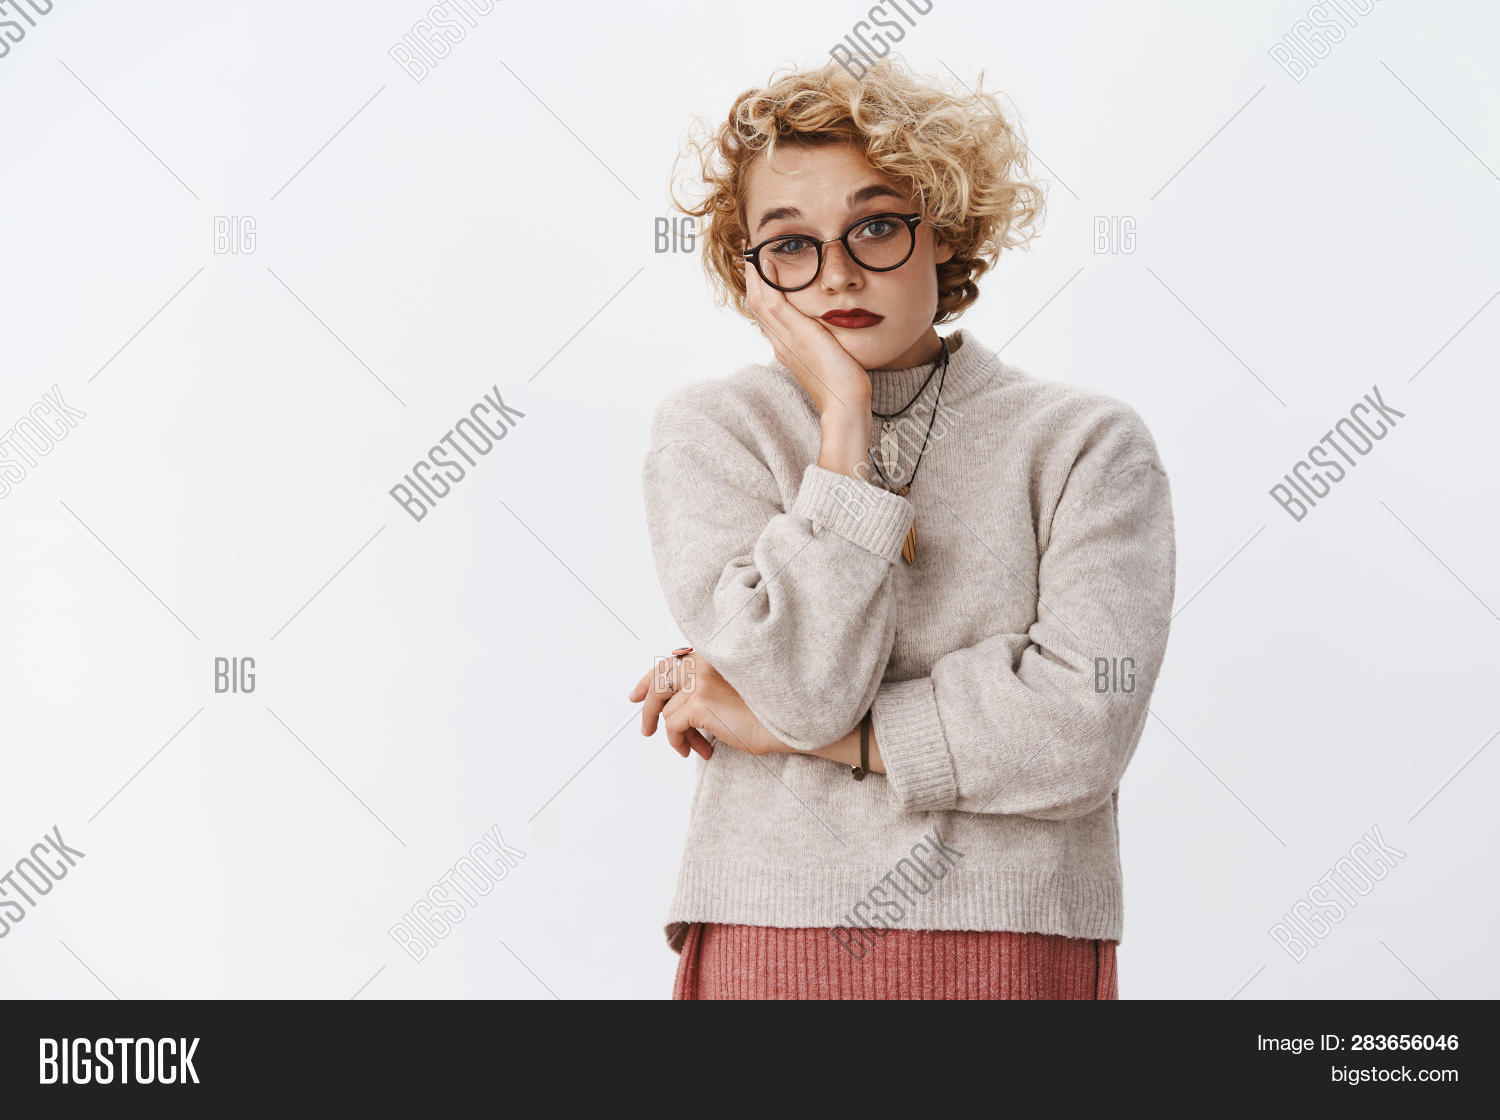 advertisement,attractive,background,beautiful,blond,blonde,bored,boring,casual,cute,emotional,expressive,eyewear,fair,female,friendly,gestures,gesturing,girl,girlfriend,glasses,gloomy,gray,happiness,hipster,holidays,horizontal,indifferent,joyful,playful,portrait,posing,positive,pretty,sad,short-hair,smile,student,studio,stylish,sweater,trendy,unbothered,uninterested,upset,valentine,winter,woman,young,youth